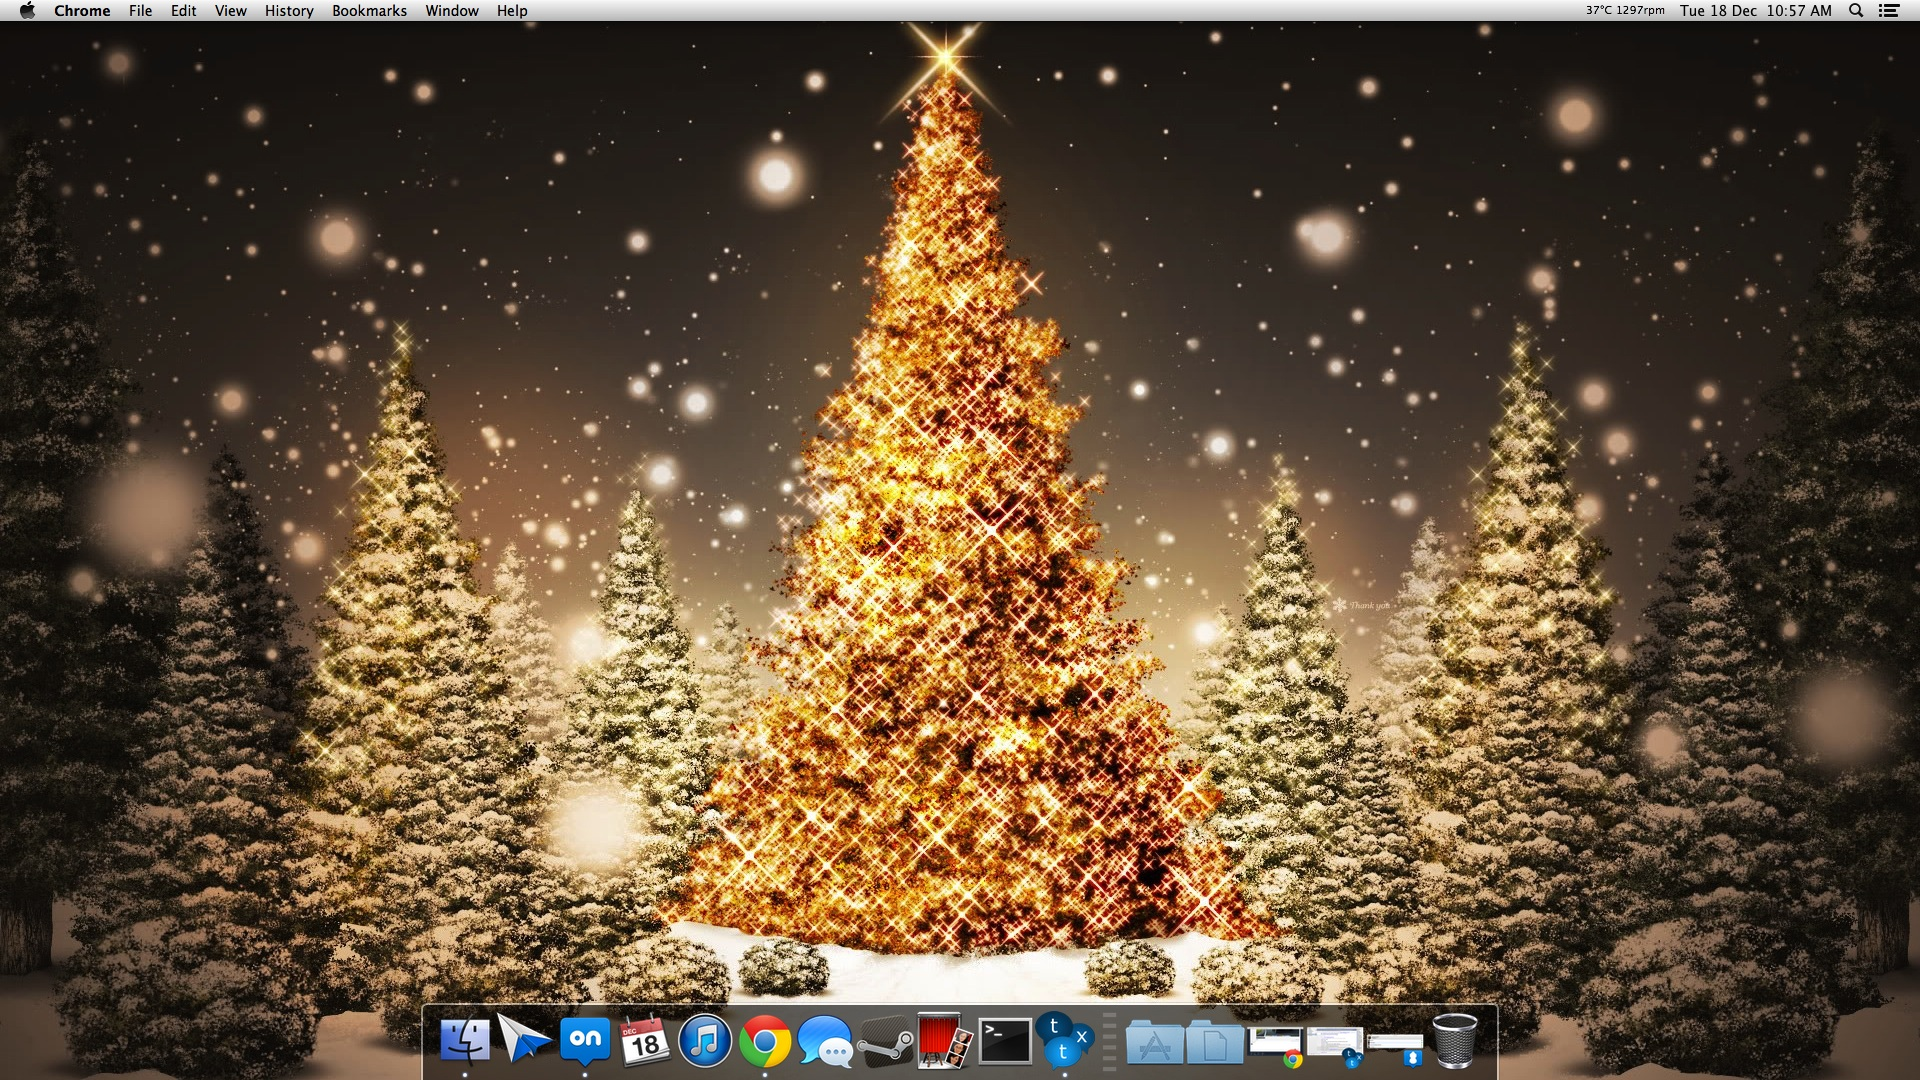 Attached Image: Screen Shot 2012-12-18 at 10.57.38 AM.jpg